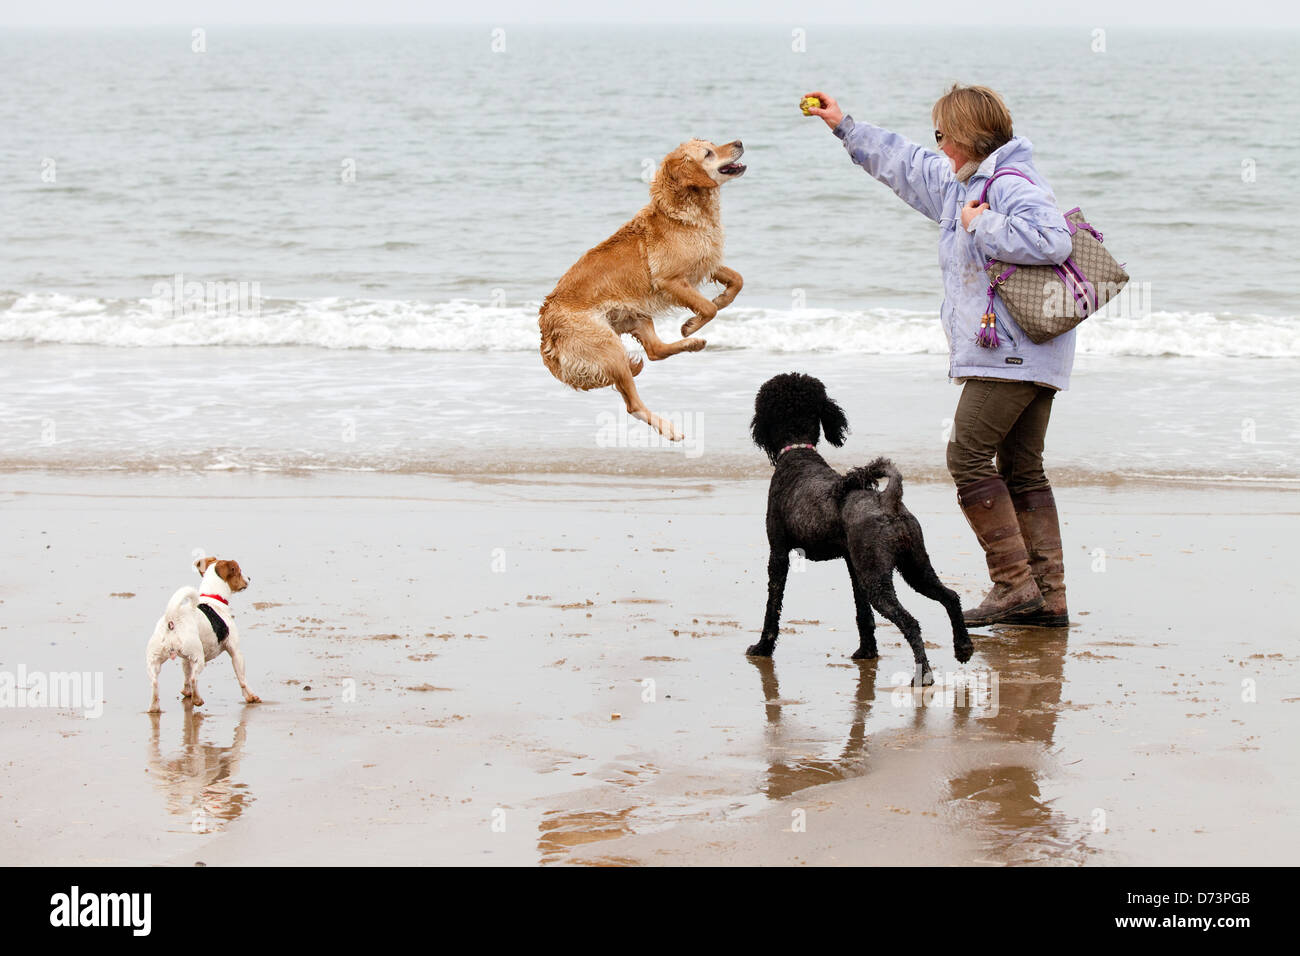 Dog jumping up and playing with its owner, while walking on Holkham Beach, Norfolk, UK - Stock Image